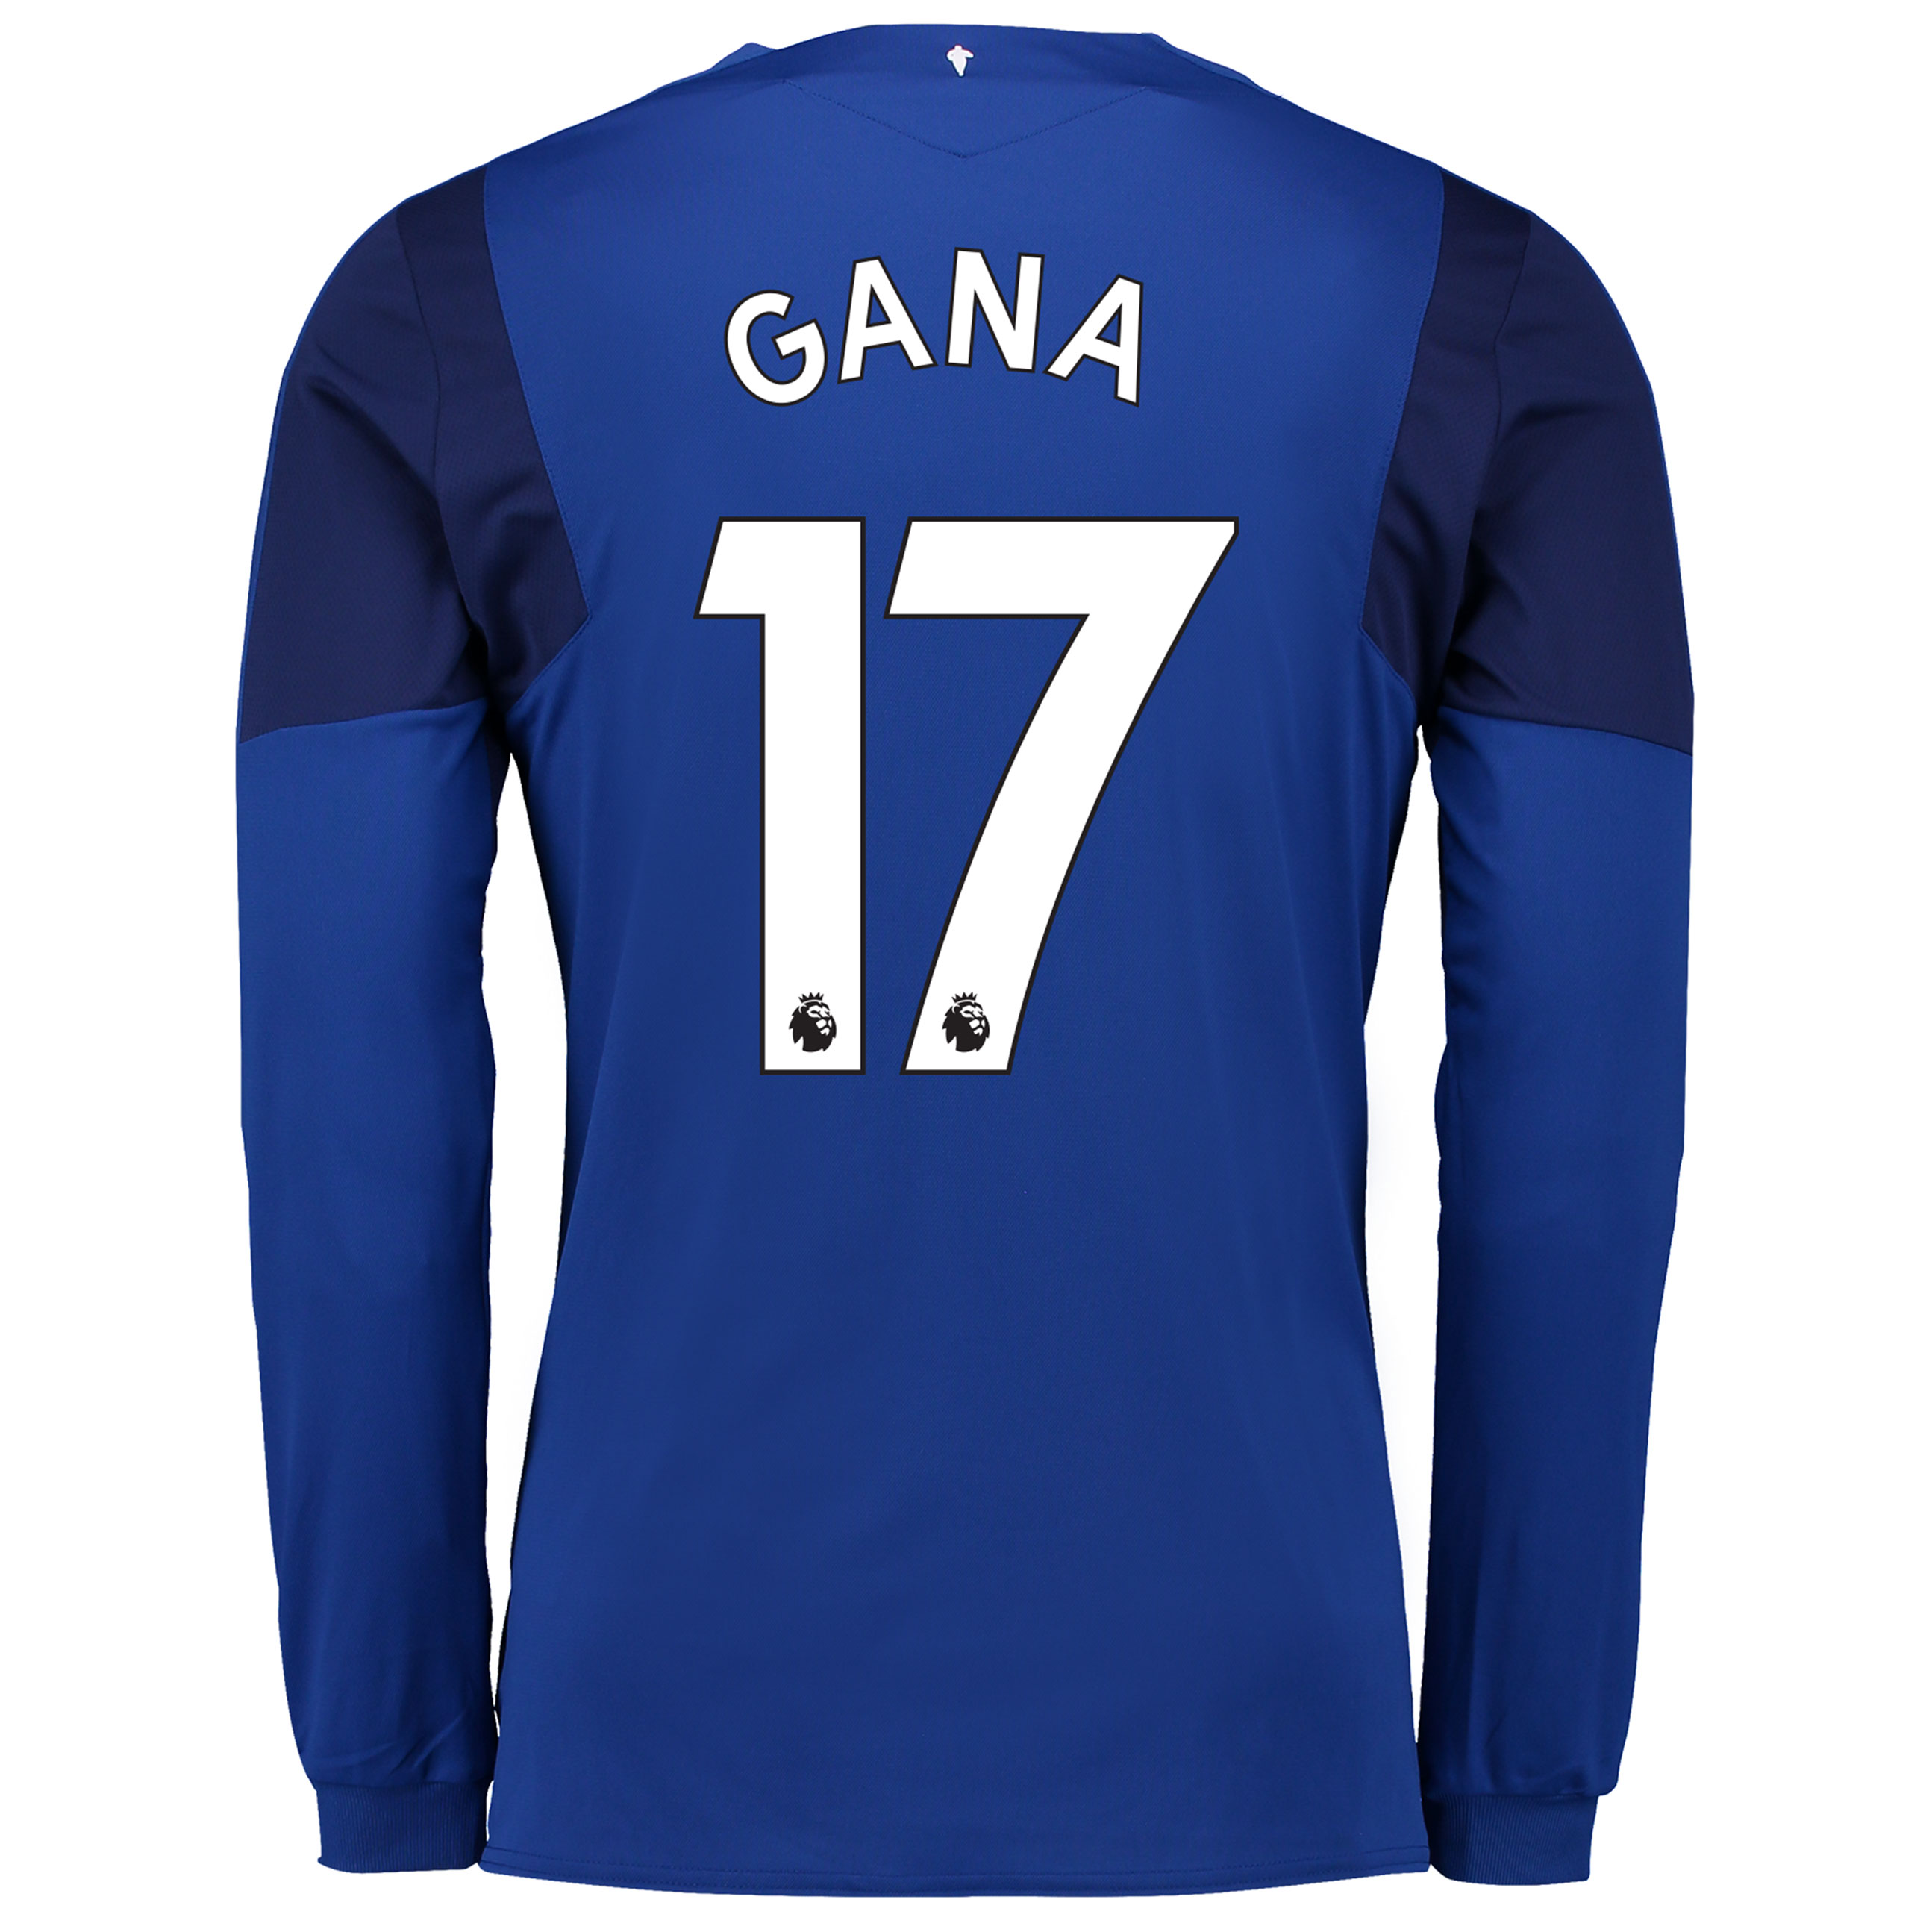 Everton Home Shirt 2017/18 - Junior - Long Sleeved with Gana 17 printi